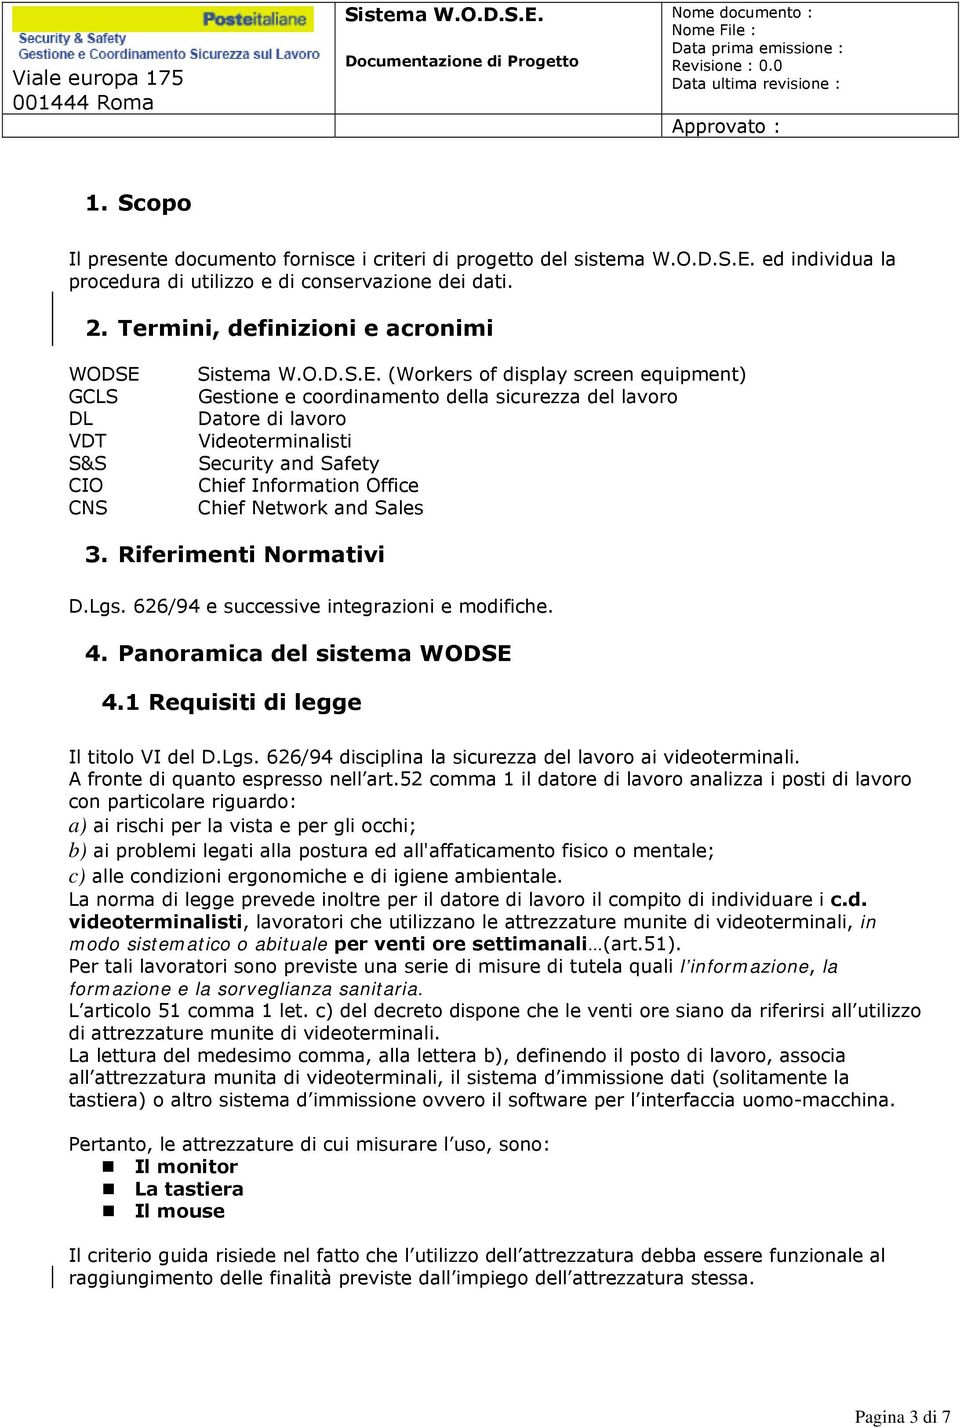 Safety Chief Information Office Chief Network and Sales 3. Riferimenti Normativi D.Lgs. 626/94 e successive integrazioni e modifiche. 4. Panoramica del sistema WODSE 4.